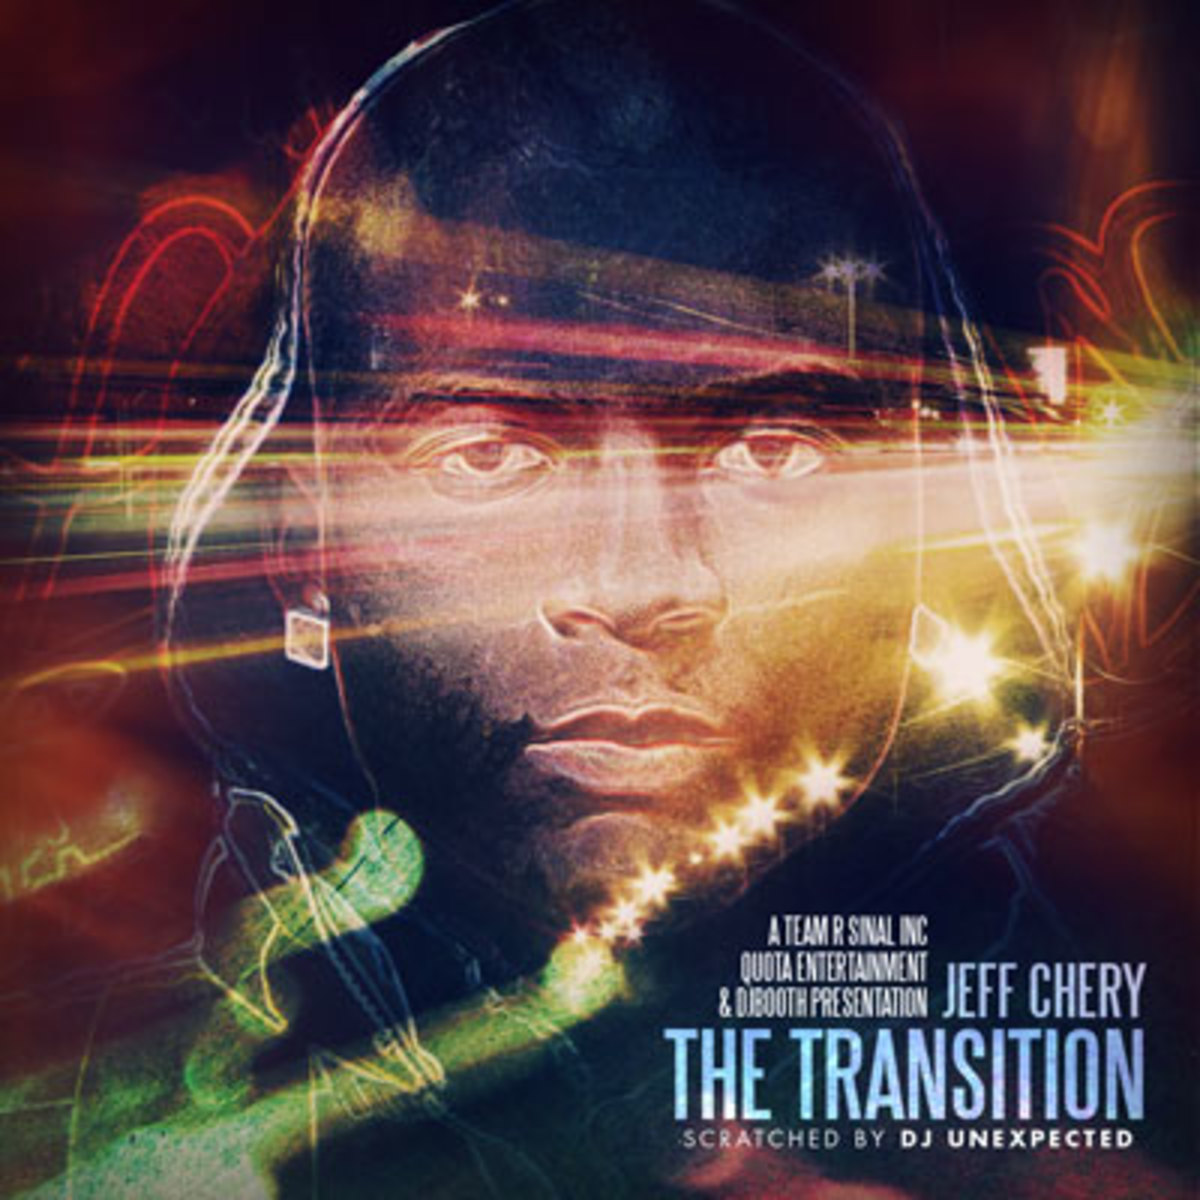 jeff-chery-transition-cover.jpg